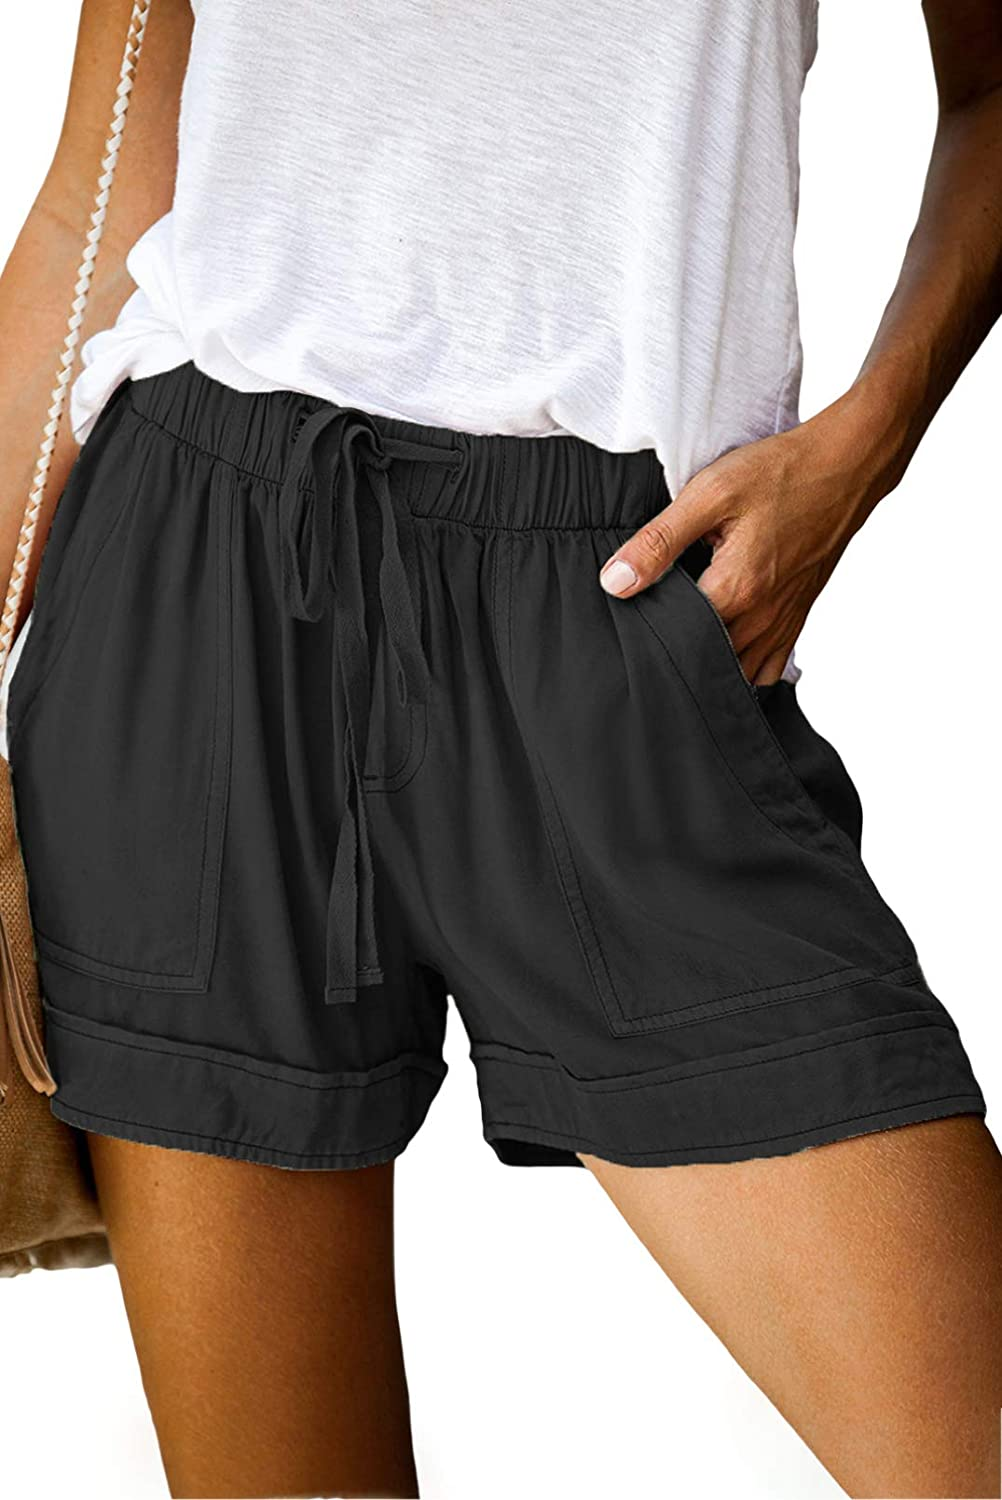 ROSKIKI Womens Summer Casual Drawstring Elastic Waist Comfy Pure Color Shorts with Pockets